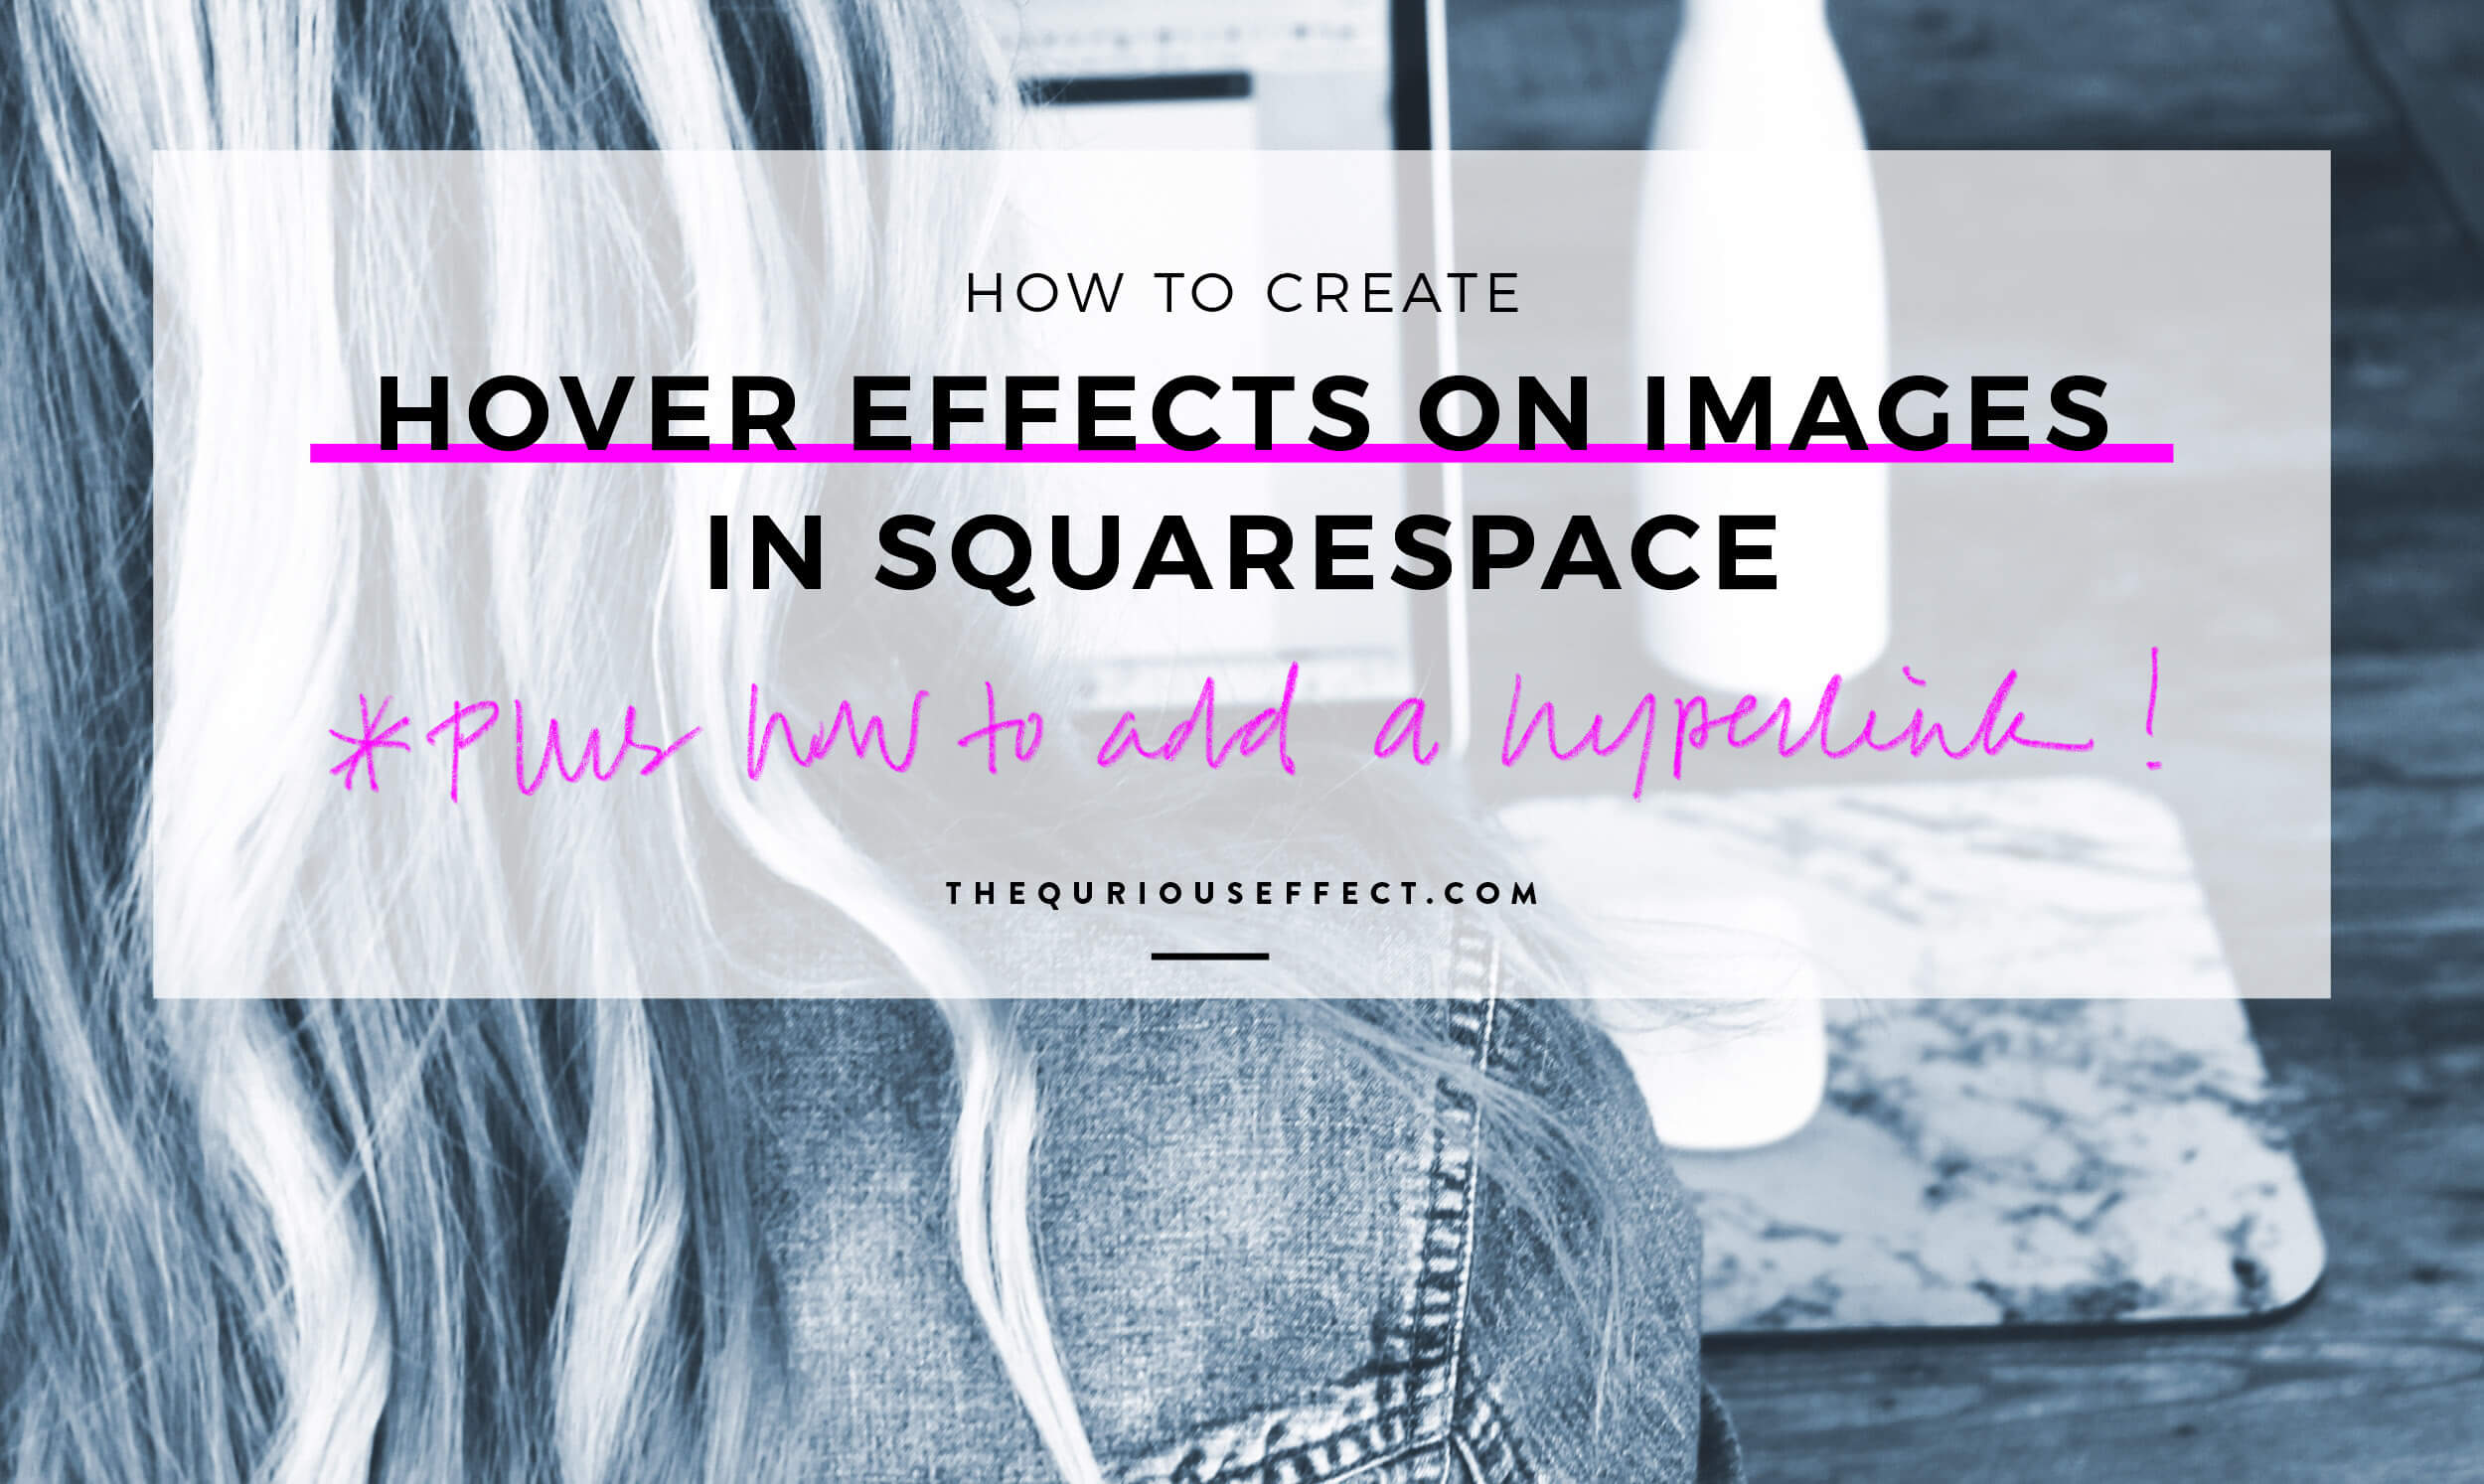 How to Create Hover Effects on Images in Squarespace